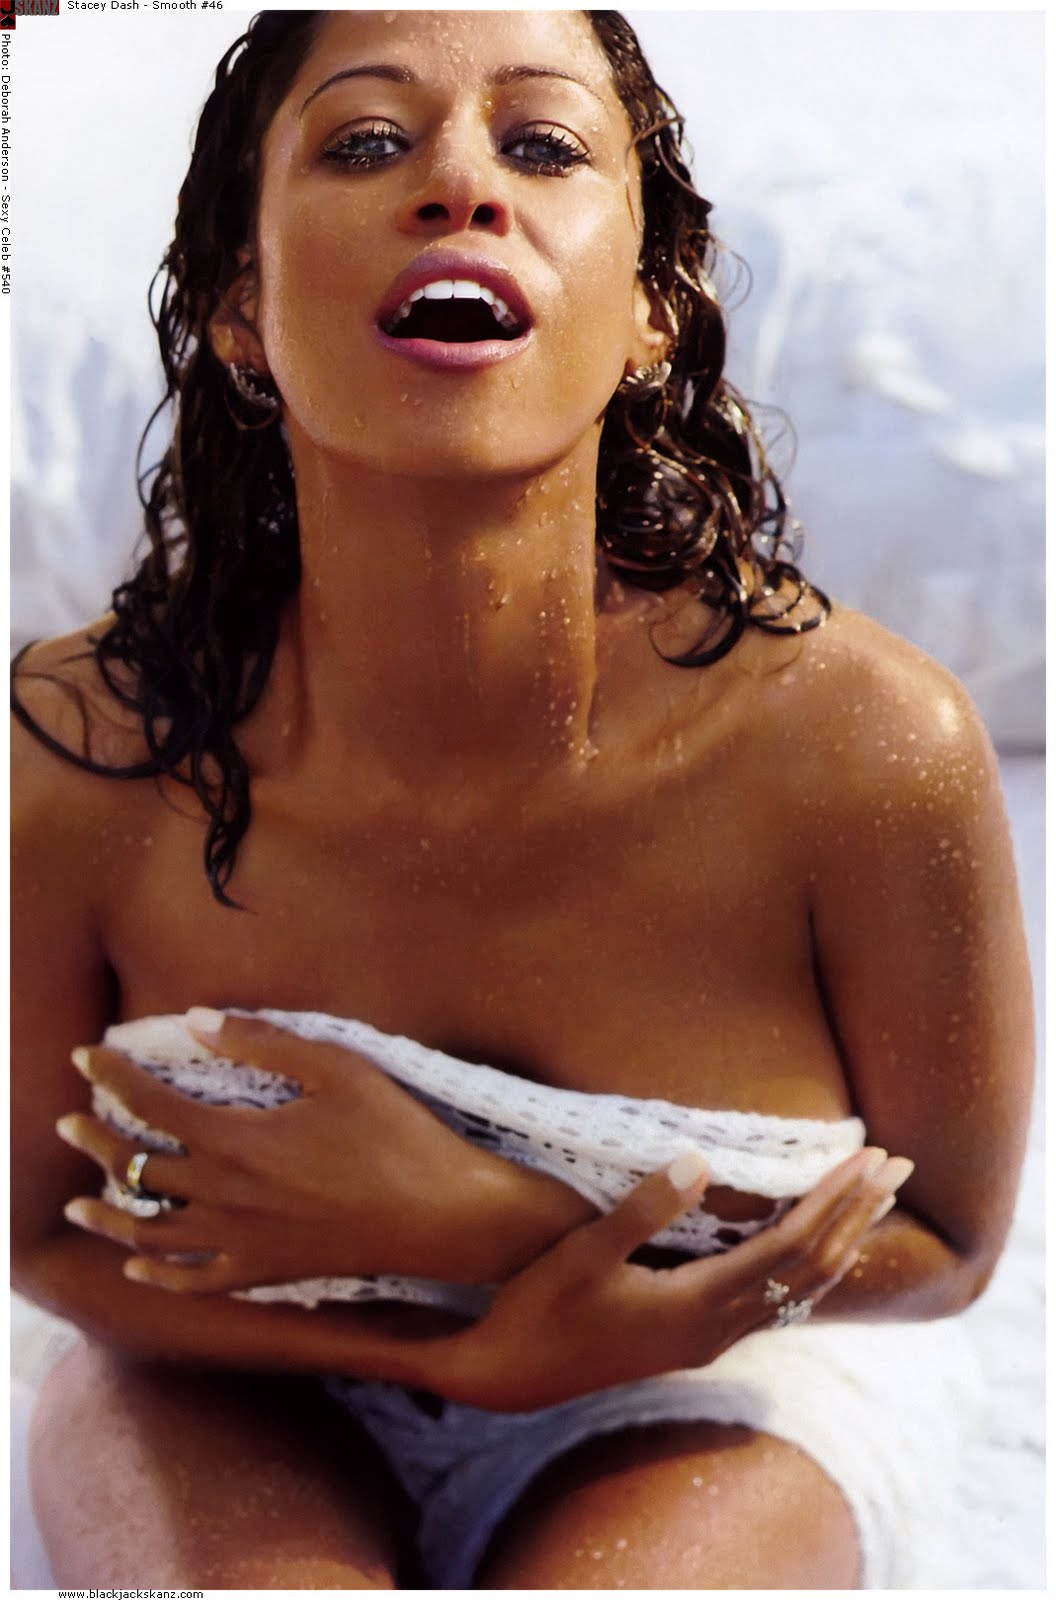 Stacey dash tits